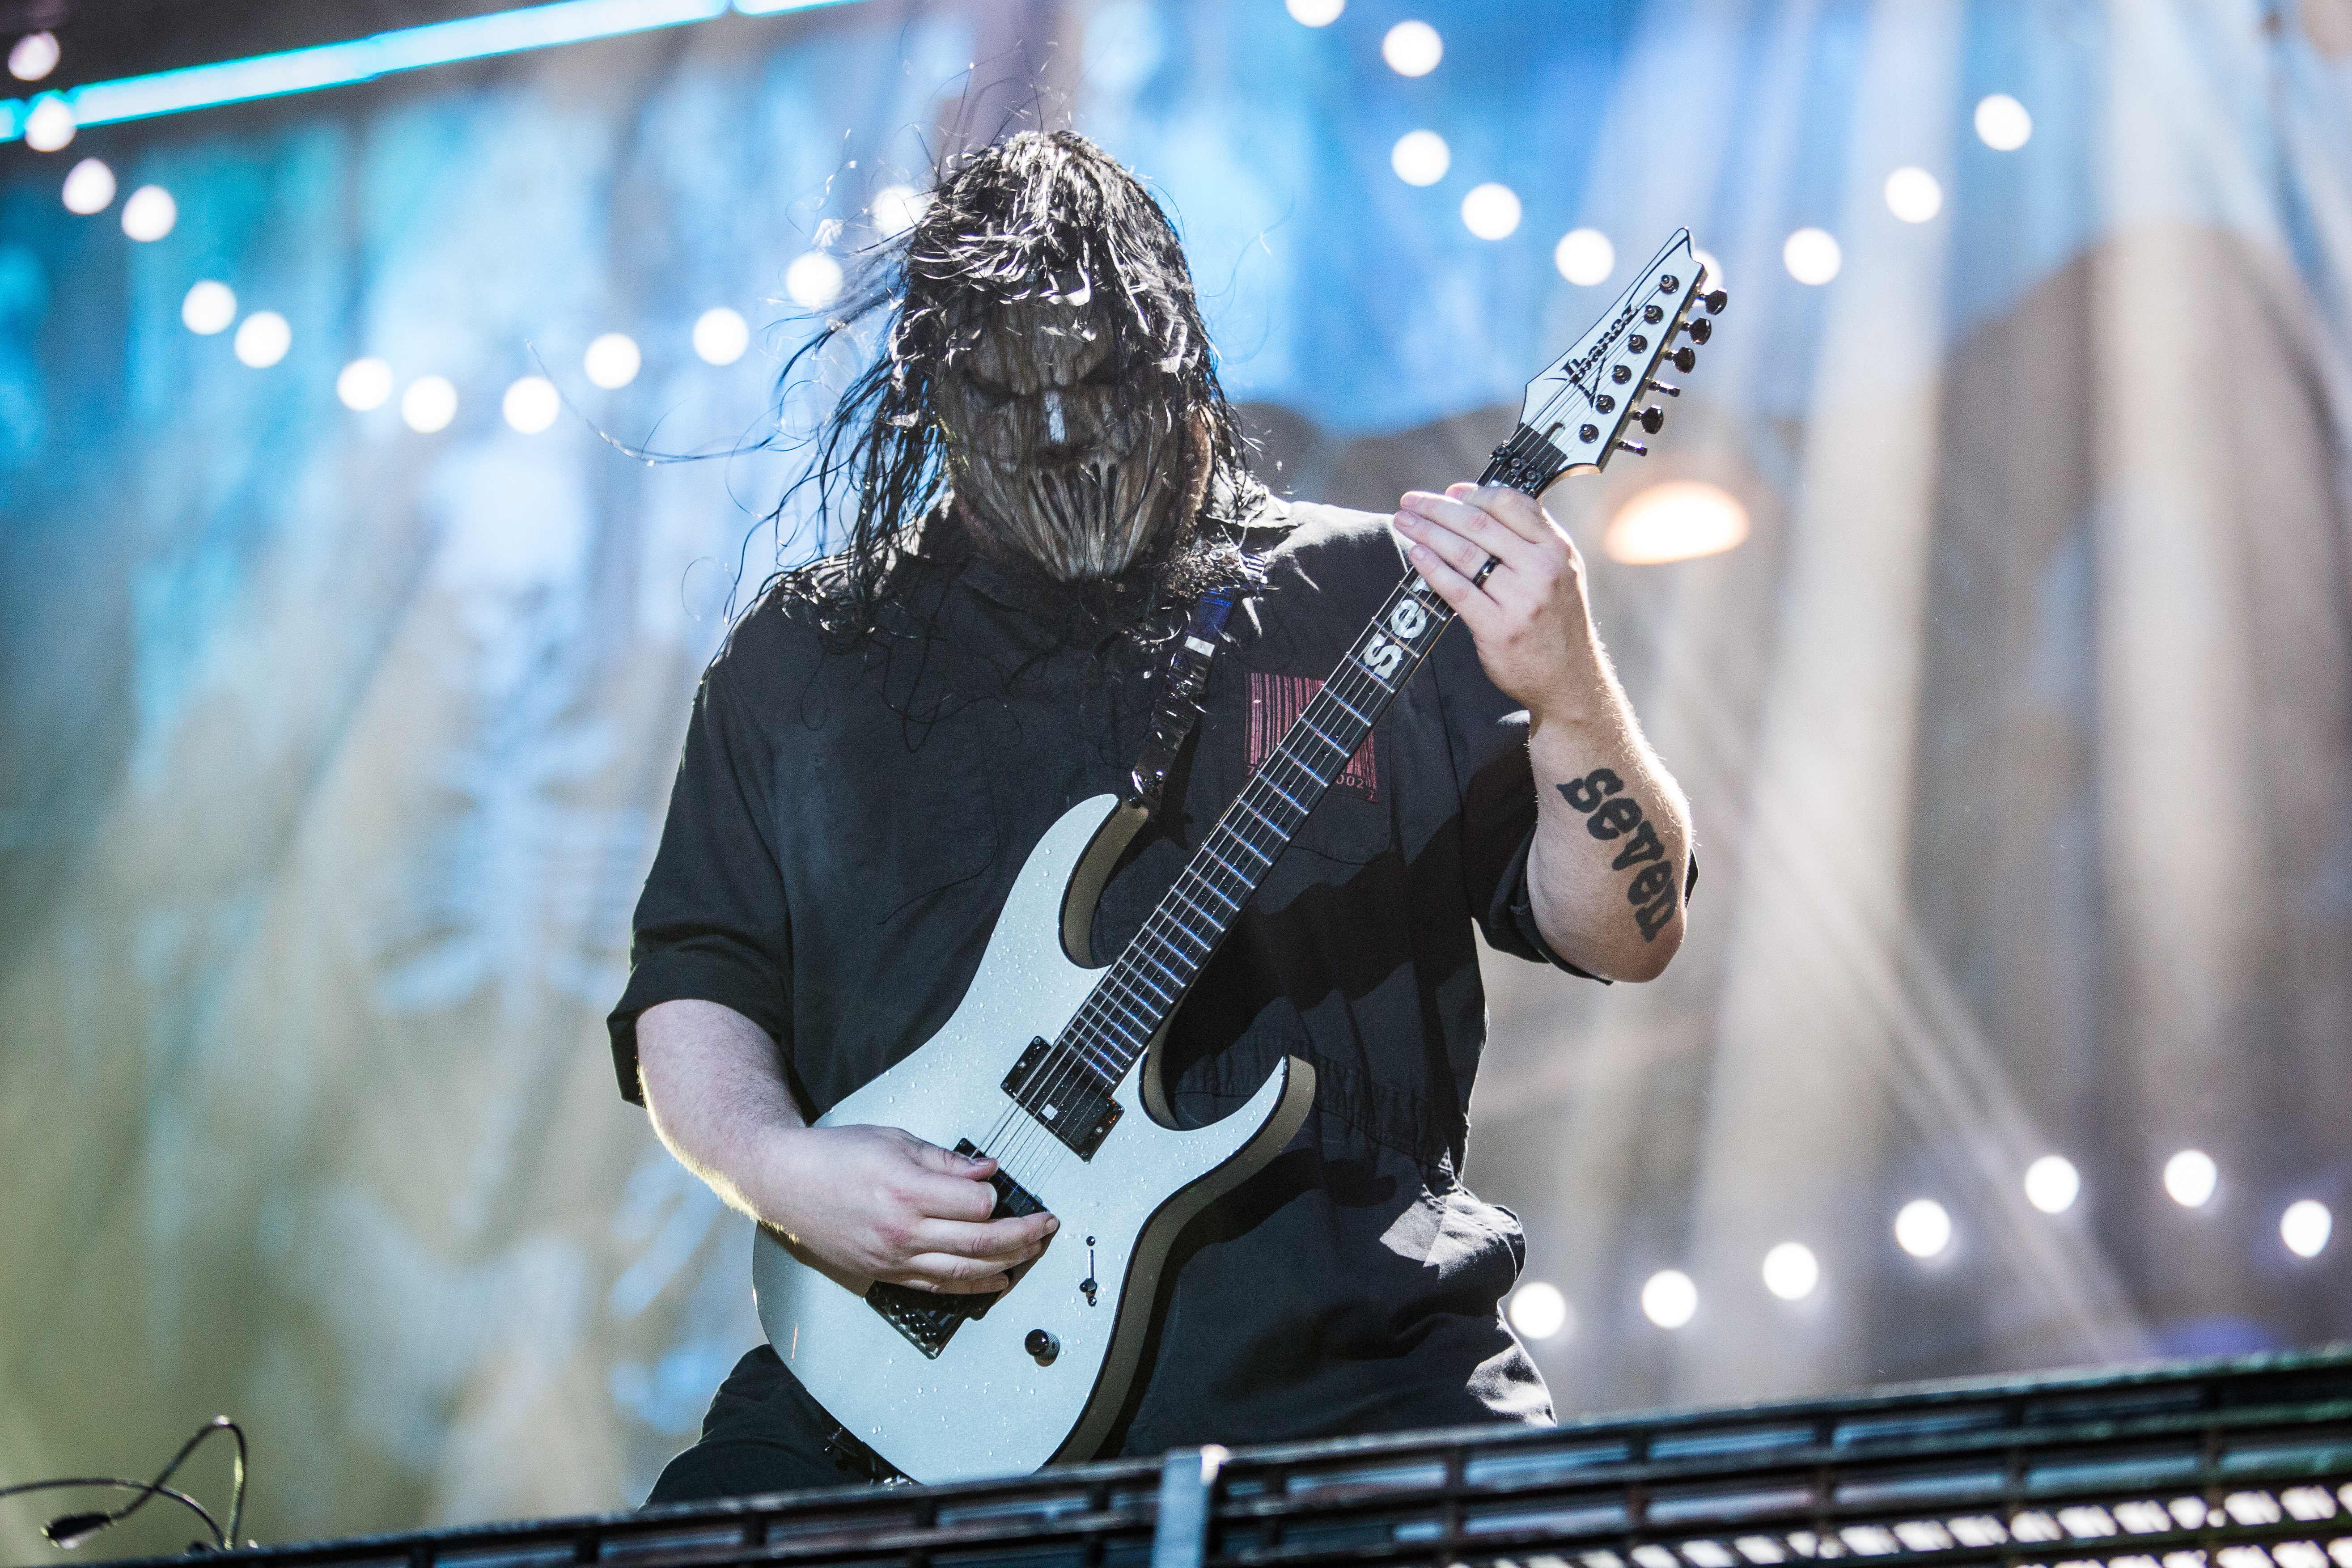 Mick Thomson of Slipknot performs live at Ippodromo Capannelle. Slipknot is an American heavy metal band from Des Moines, Iow